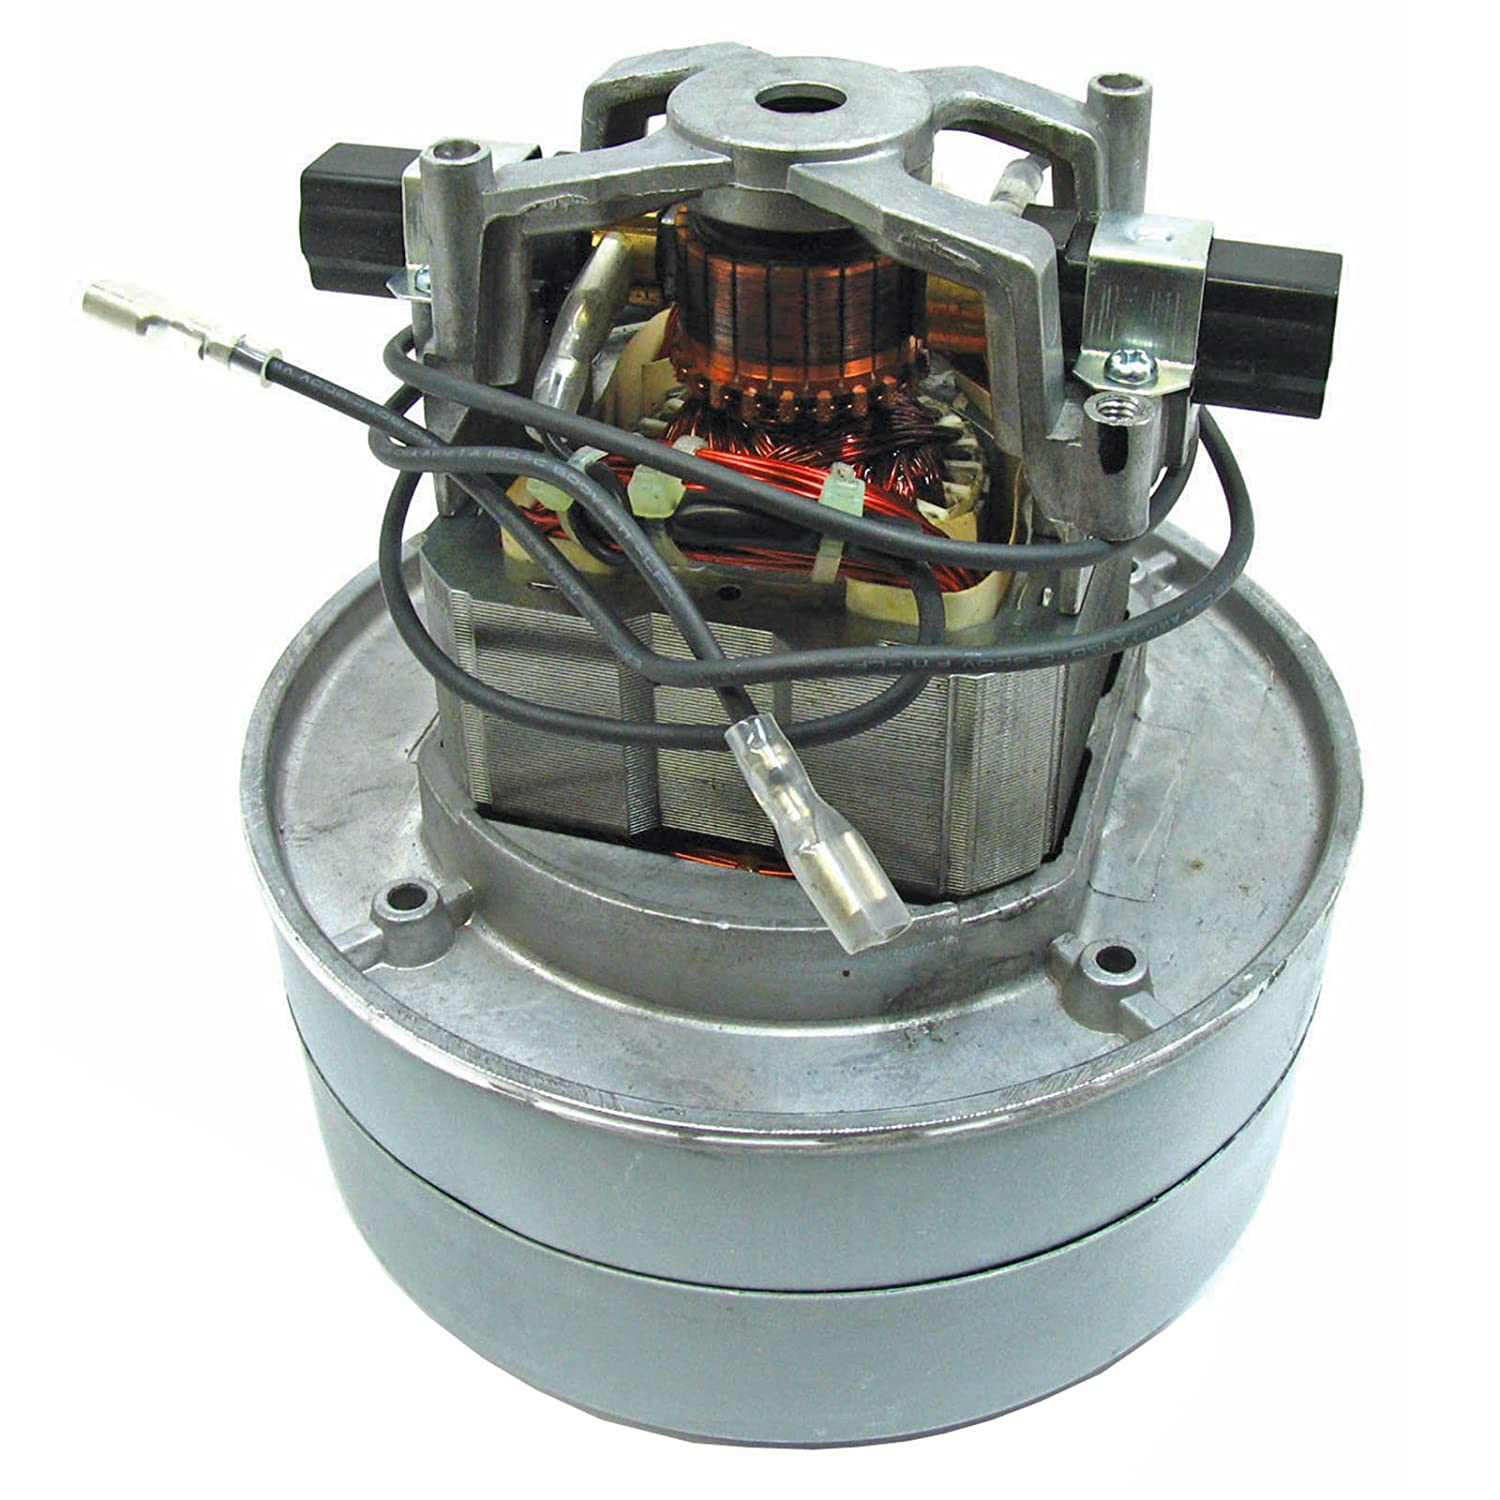 Spares2go Tco Dl2 1104t 205403 Type Motor For Numatic Henry Hetty Hoover Vacuum Wiring Cleaner 240v Kitchen Home